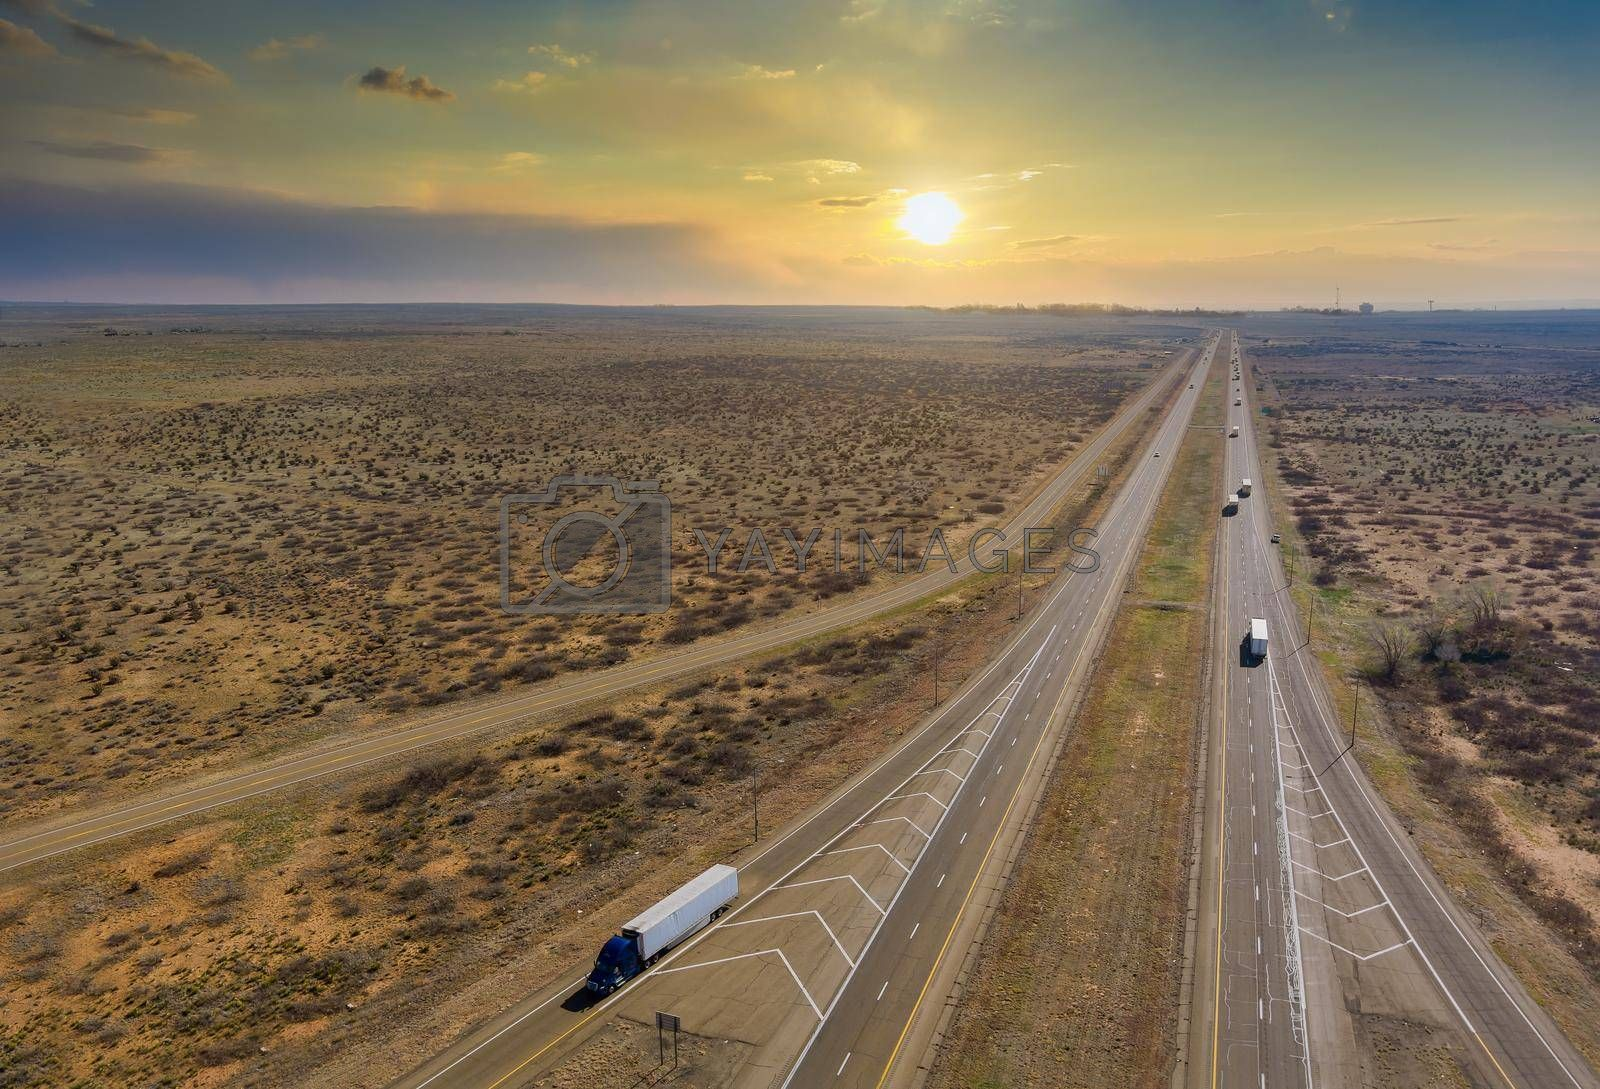 Panorama sunset view of highway in America located west in desert environment near San Jon New Mexico USA